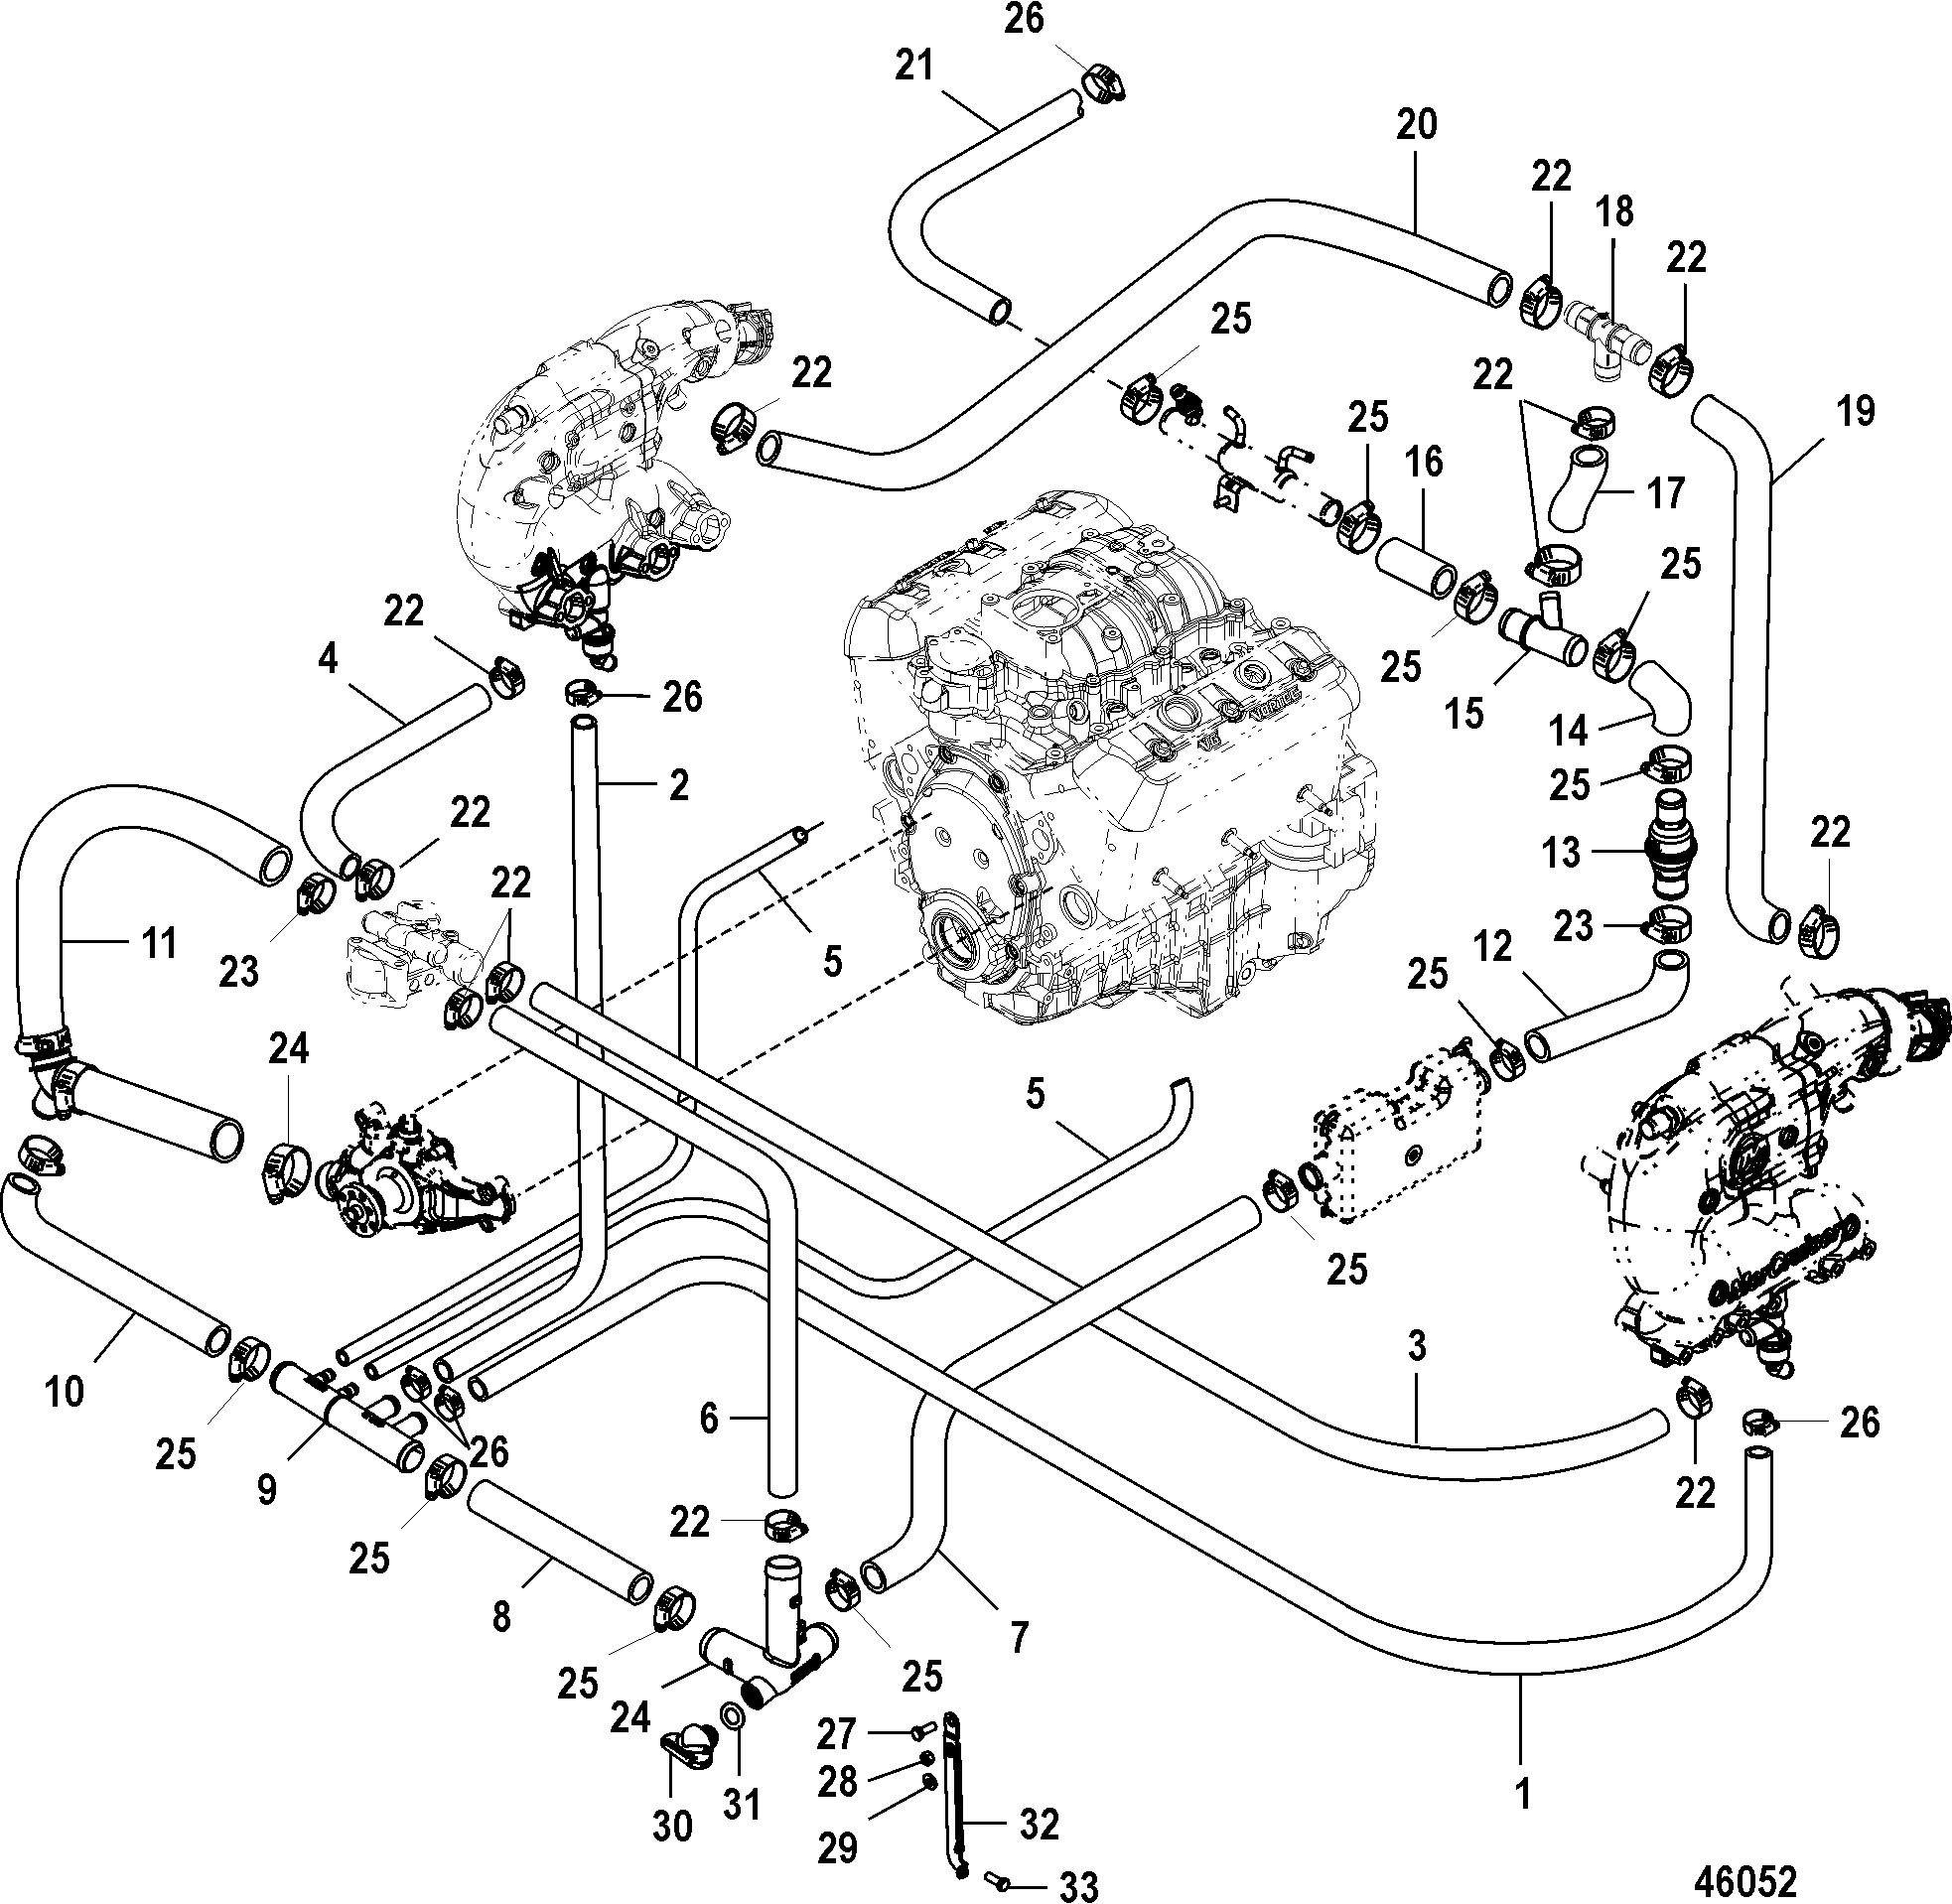 1986 Mercruiser 4 3 Engine Wiring Library 350 Diagram 1995 Images Gallery